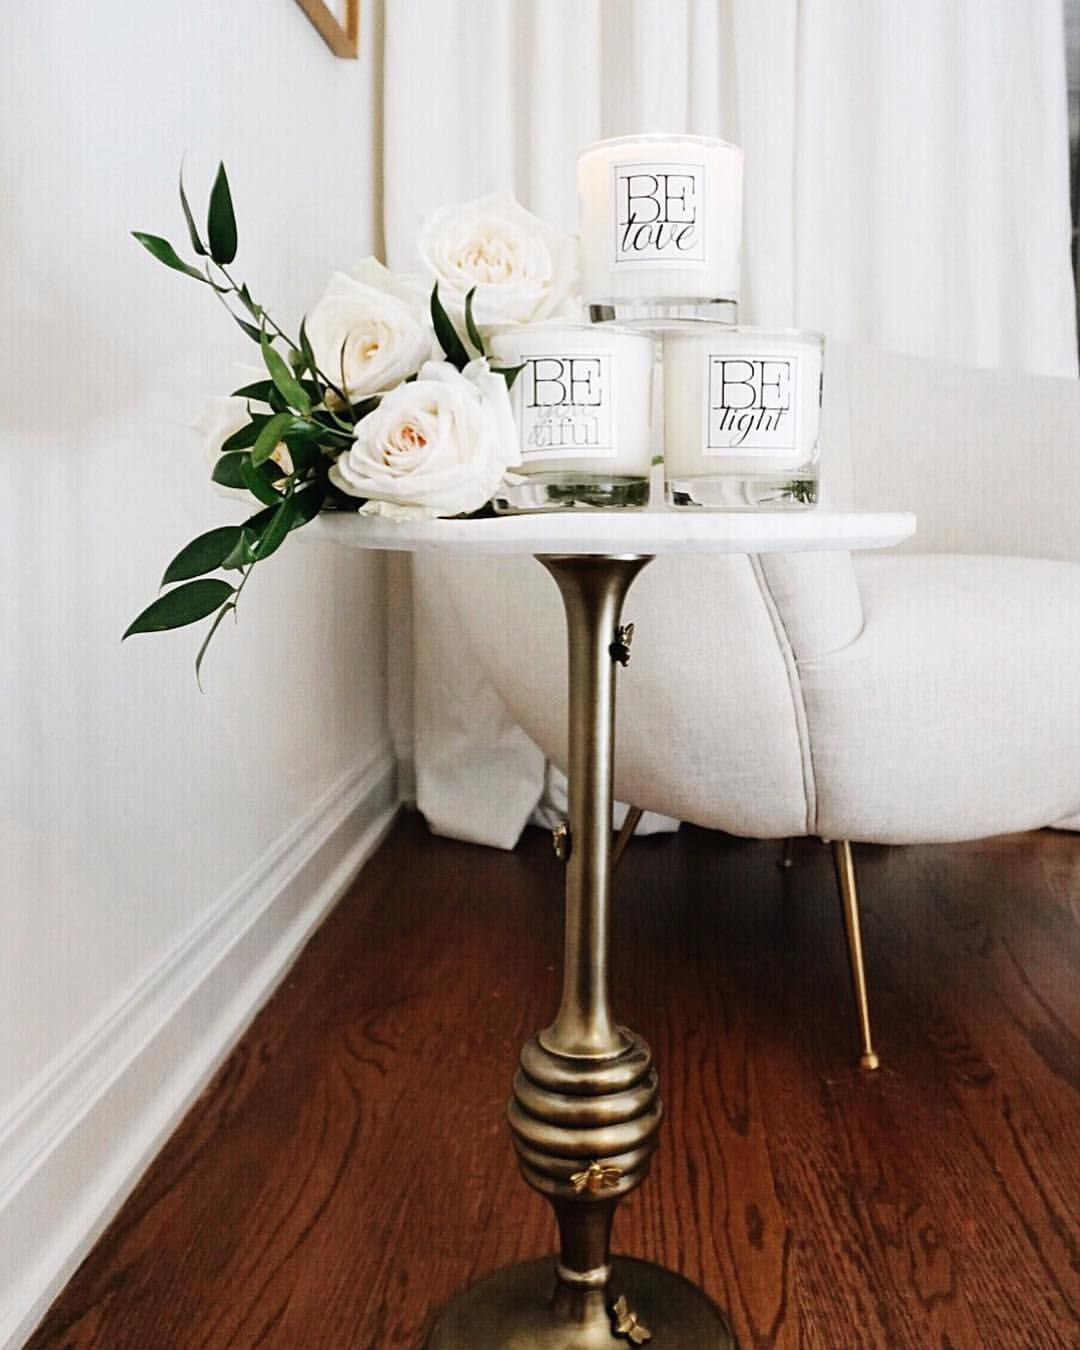 honey hive bumble marble and gold accent table anthropologie white corner garden roses light love beyoutiful candles interior design home decor parisian chic dreamy glam entryway